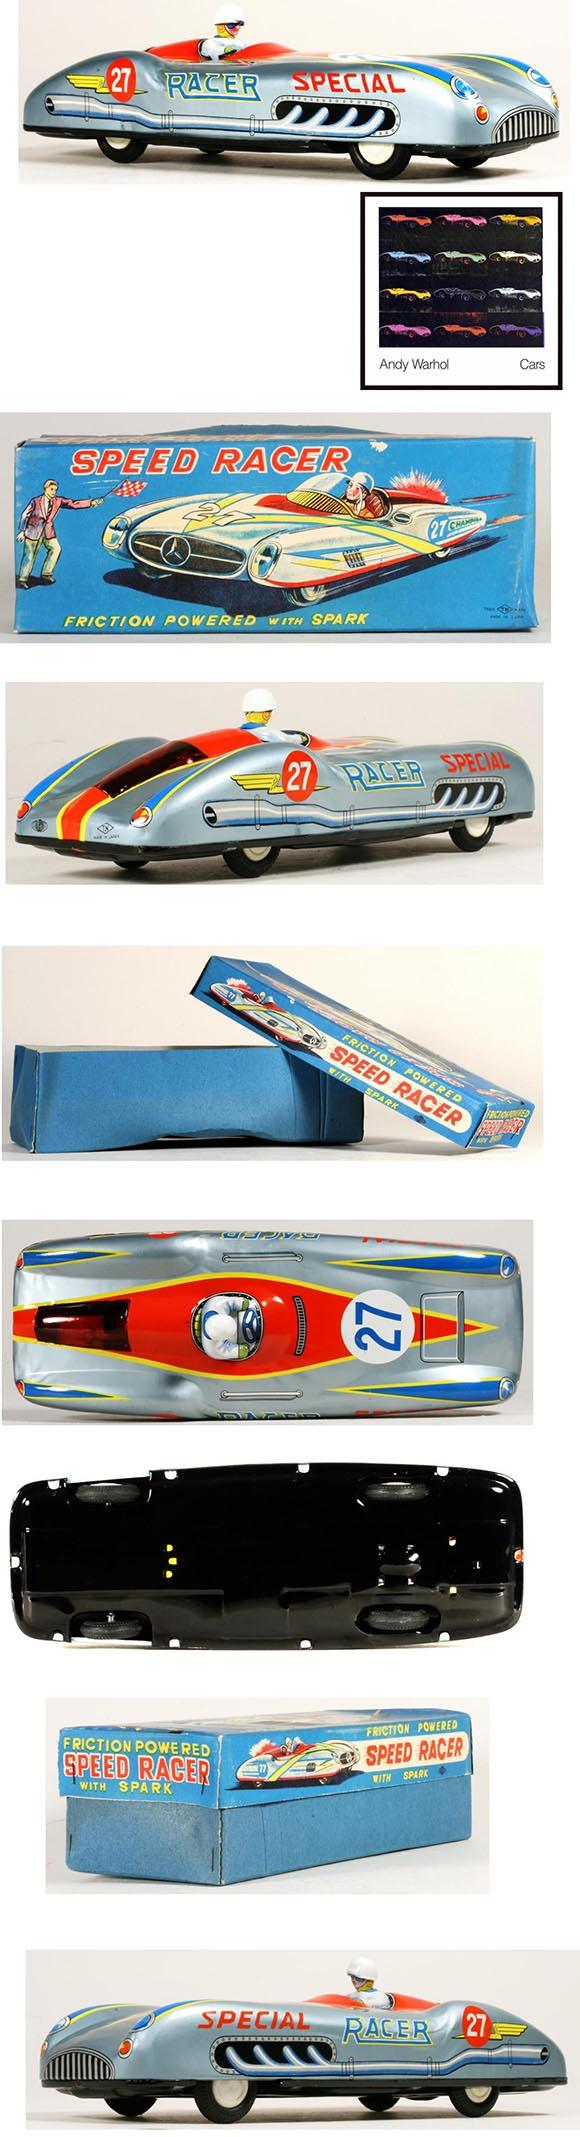 1955 Nomura, Mercedes Benz W196 Speed Racer in Original Box